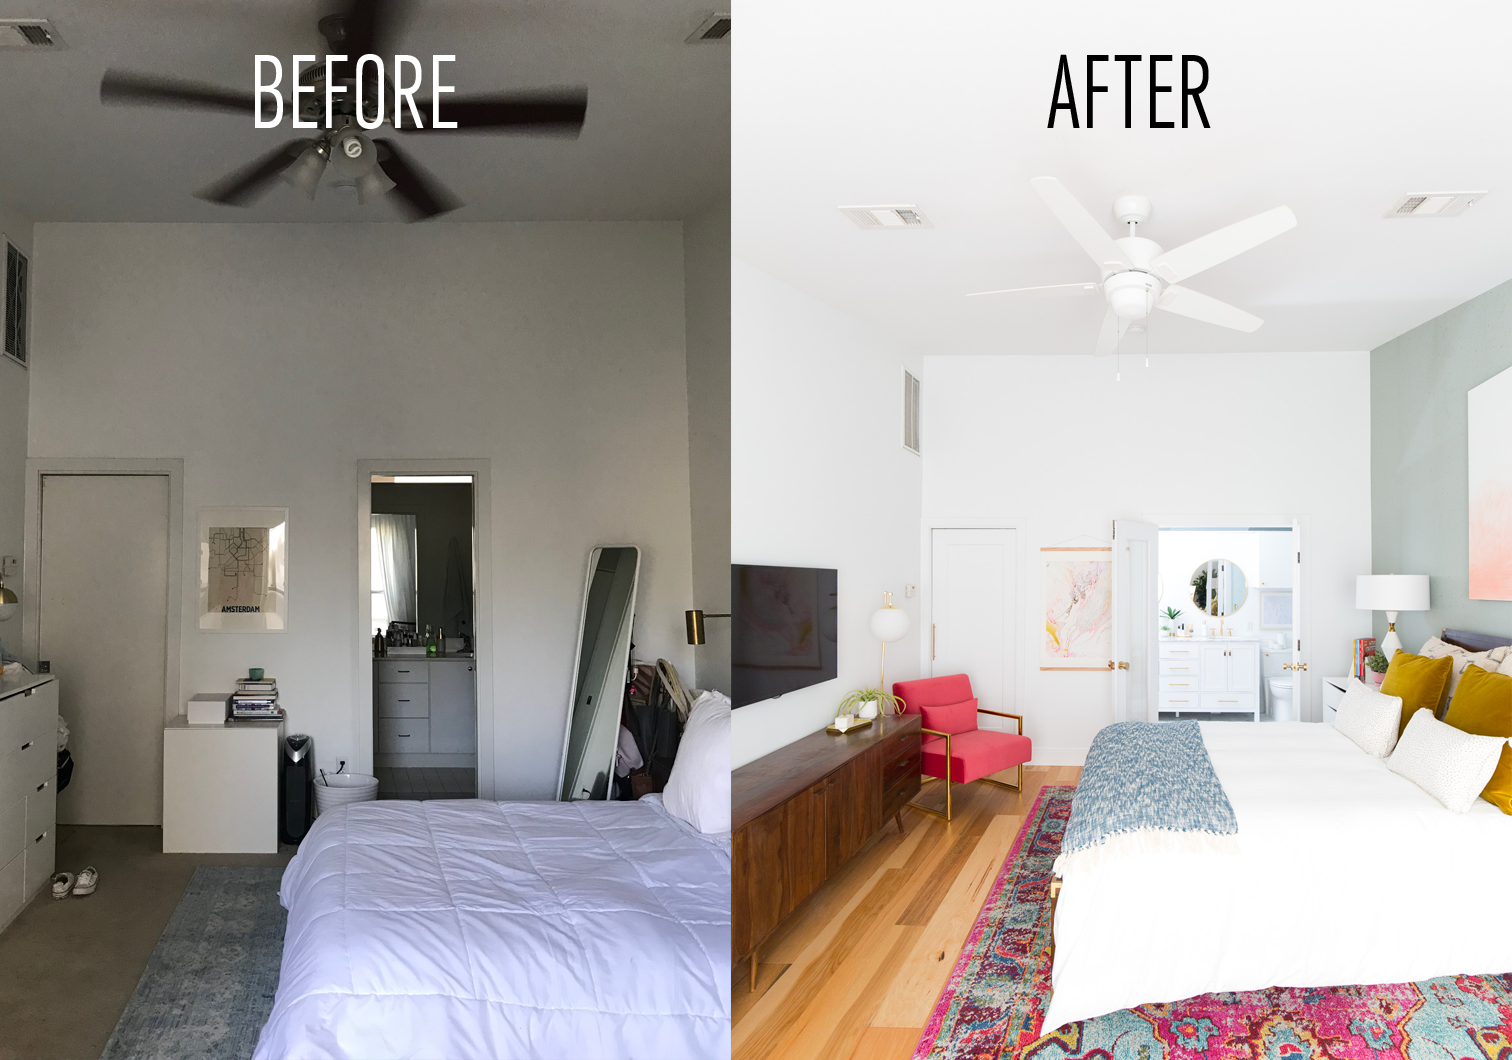 https://www.summareconbekasi.com/public/images/gallery/article/12265/before-and-after-bedroom-1.png